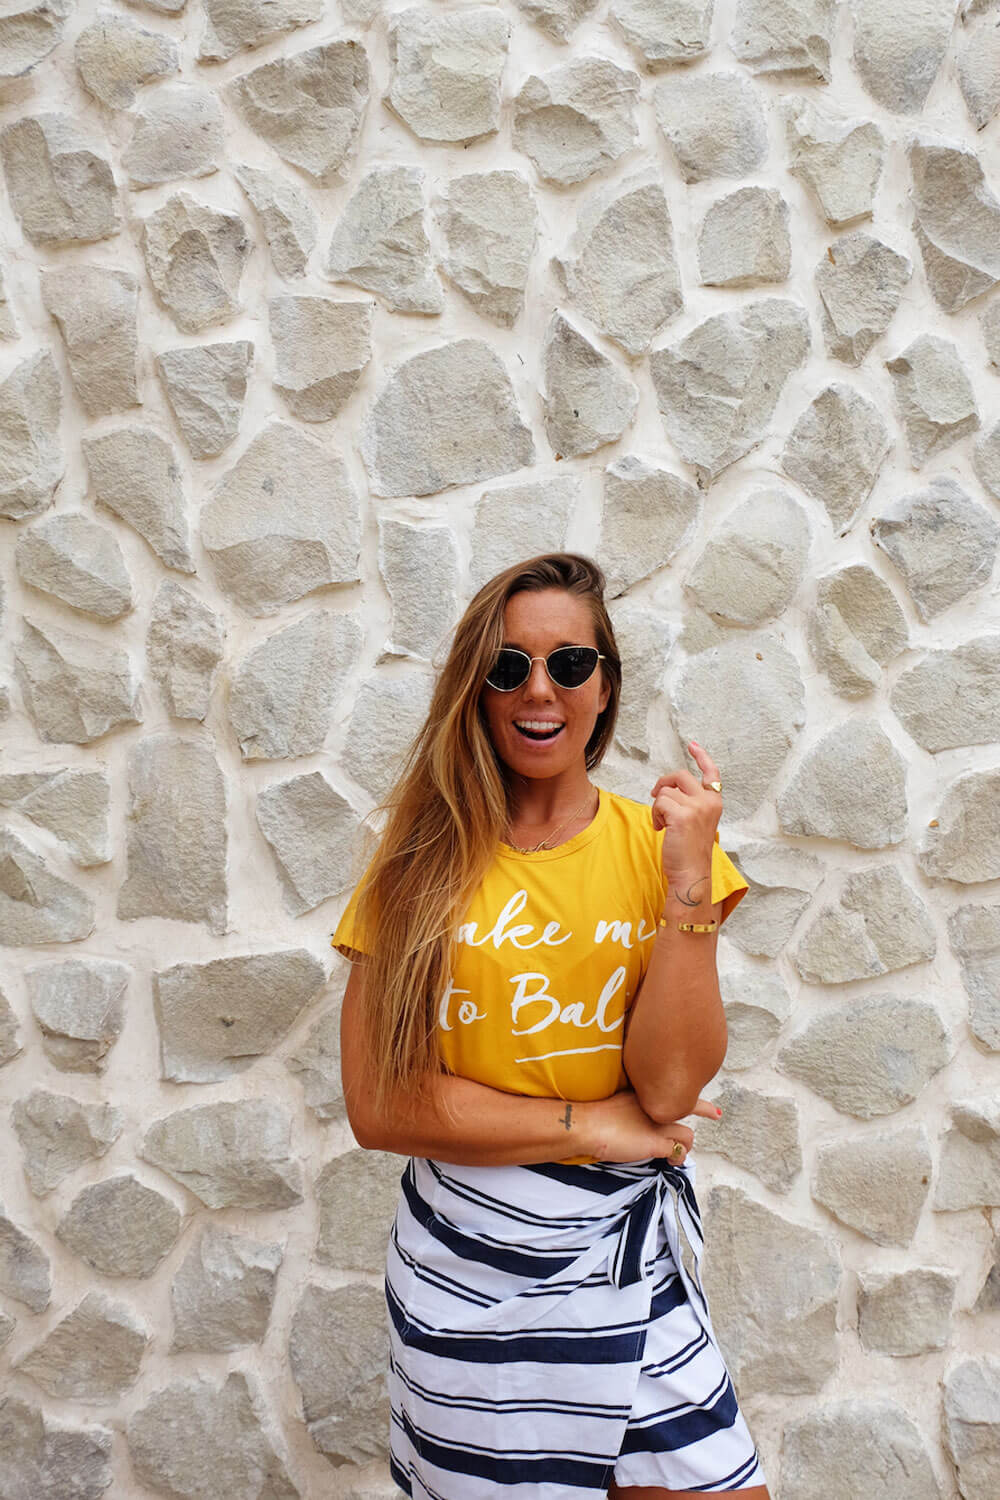 Take me to Bali T-shirt - Sunkissed